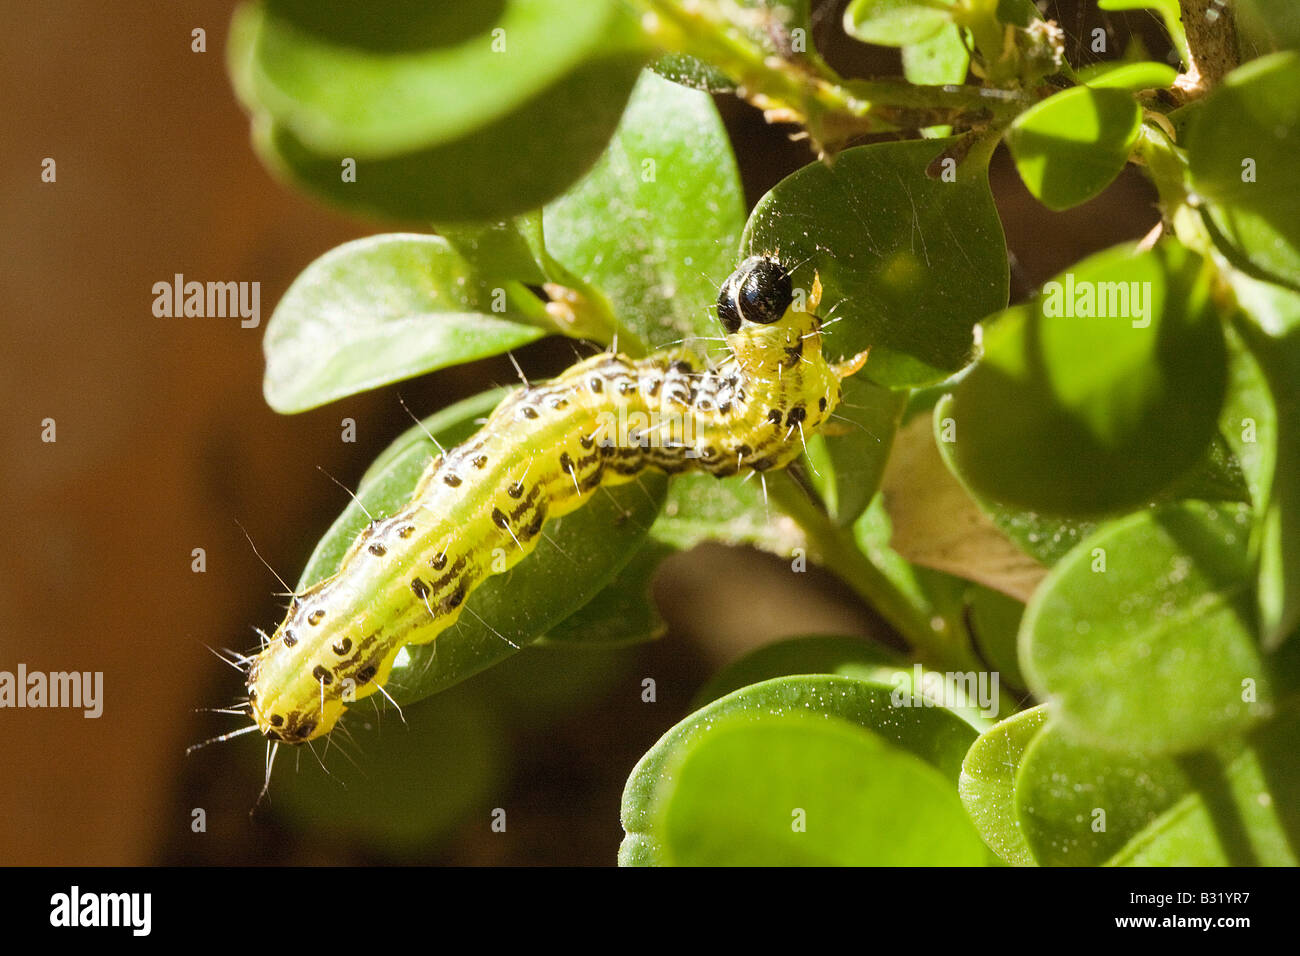 Box Tree Pyralid Moth (Glyphodes perspectalis), caterpillar eating Boxwood leaves (Buxus sempervirens) - Stock Image